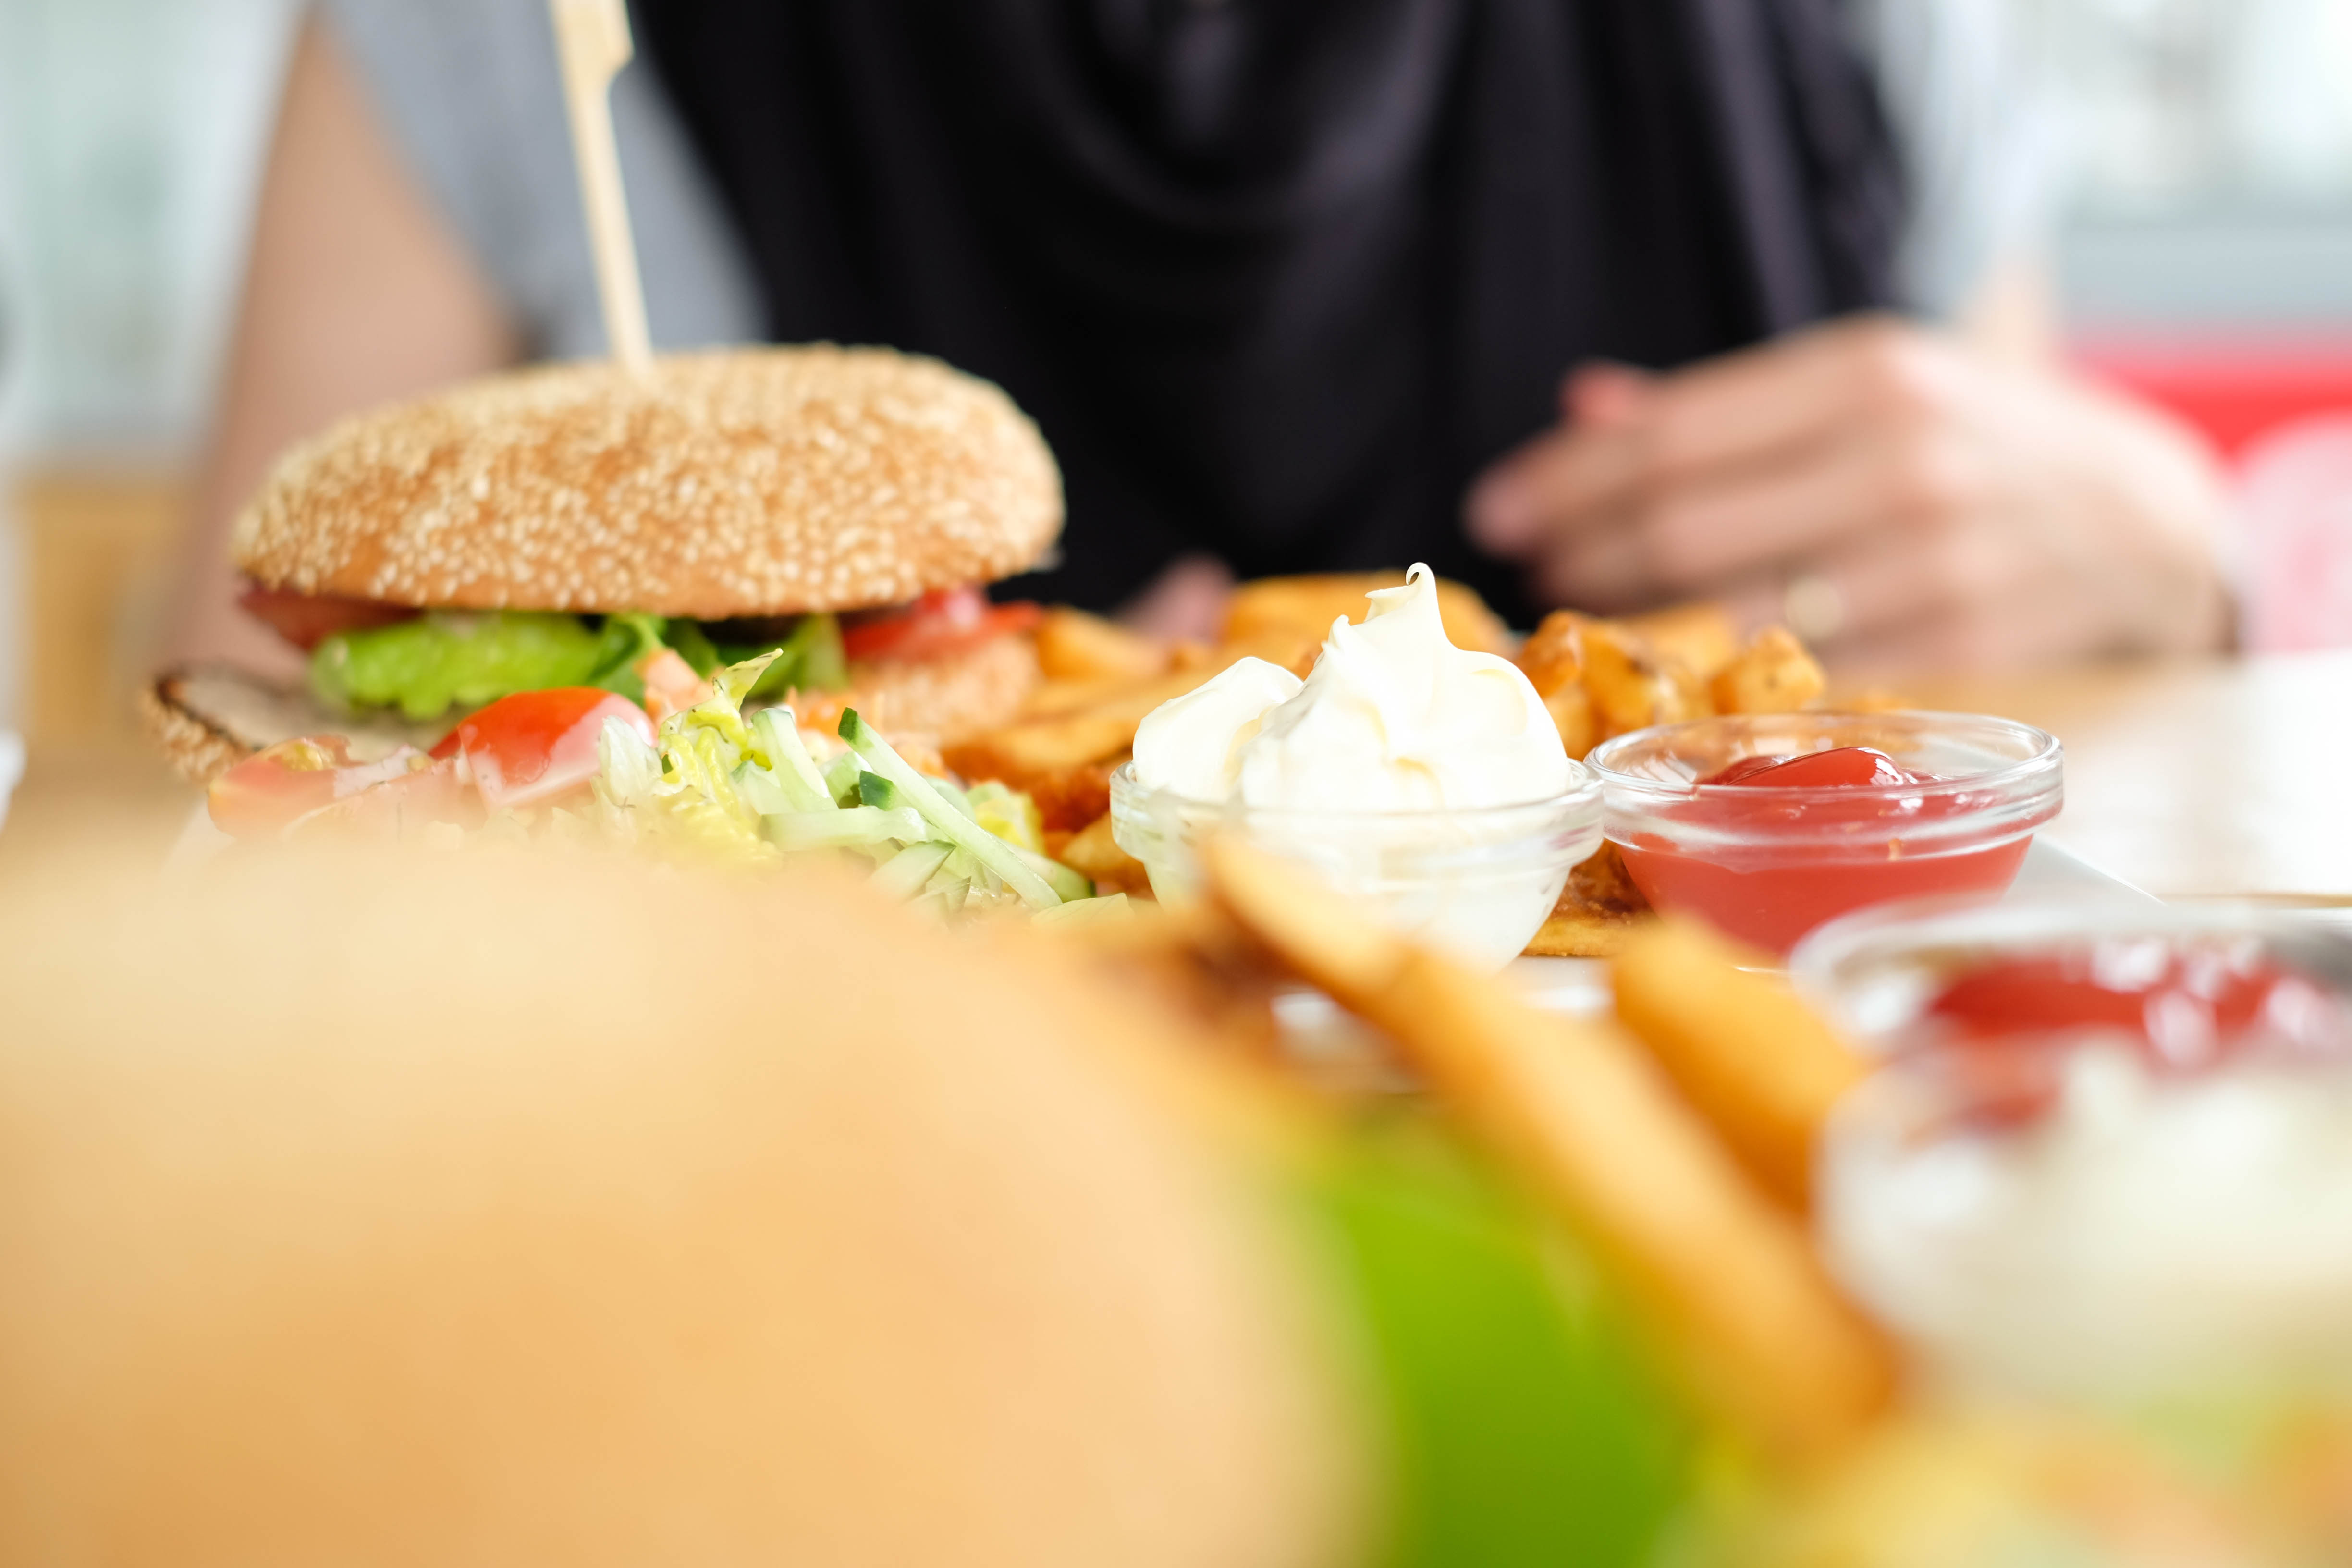 Burger Quintings Fehmarn, Orth